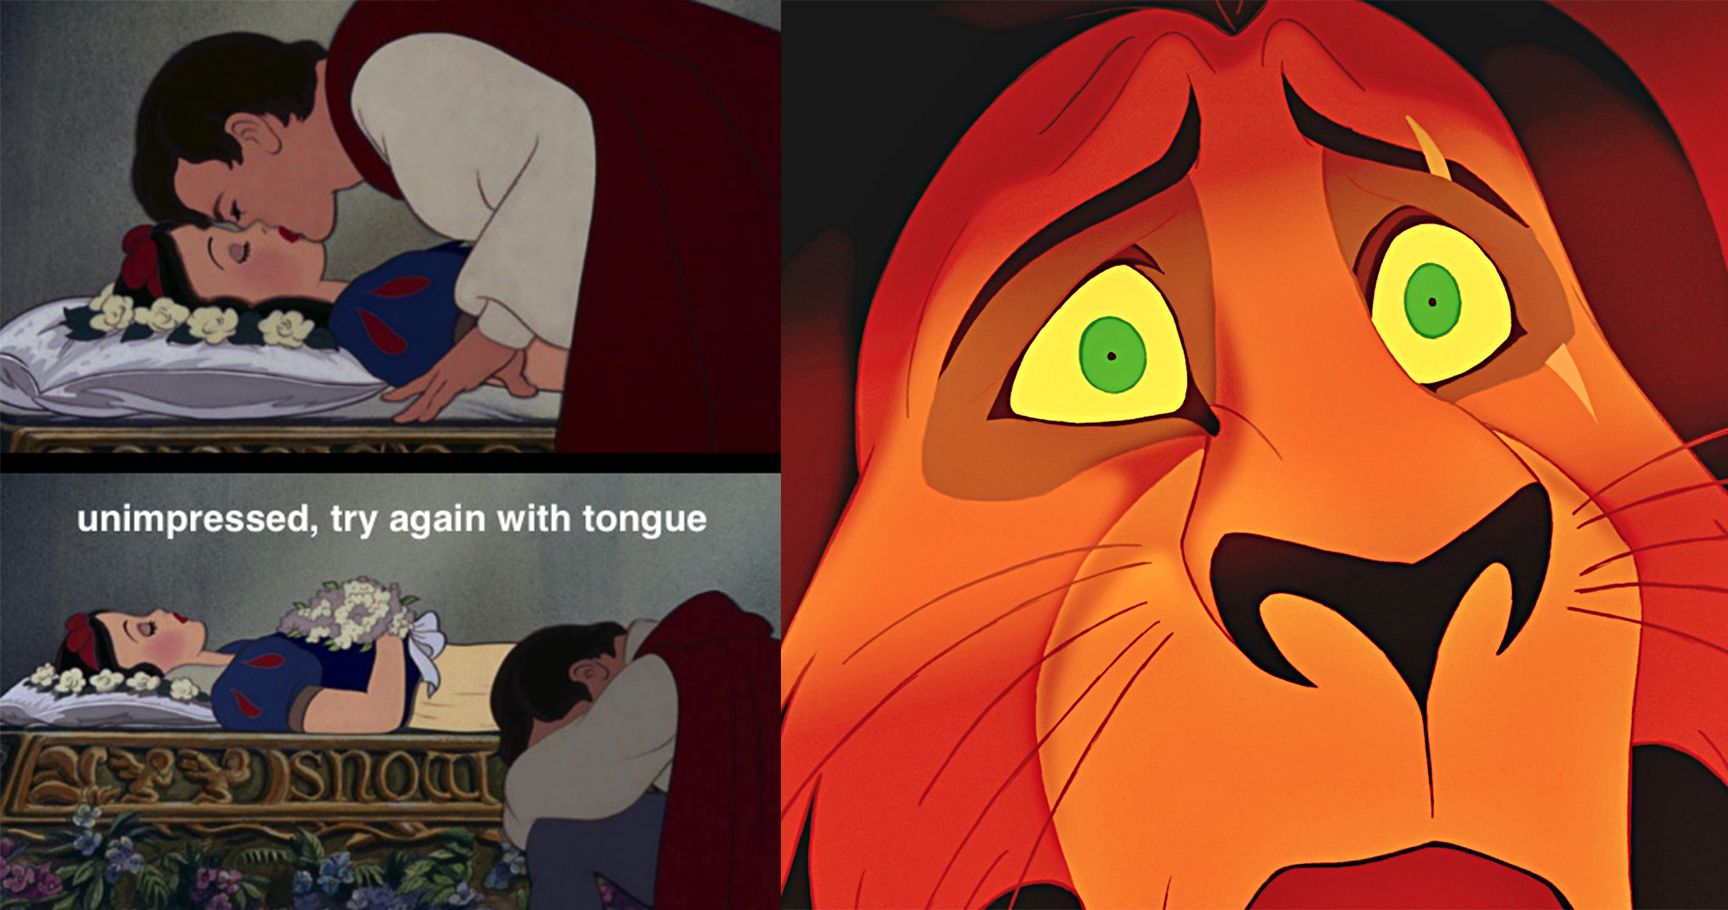 15 Awful Disney Memes That Will Give You Full Body Cringe